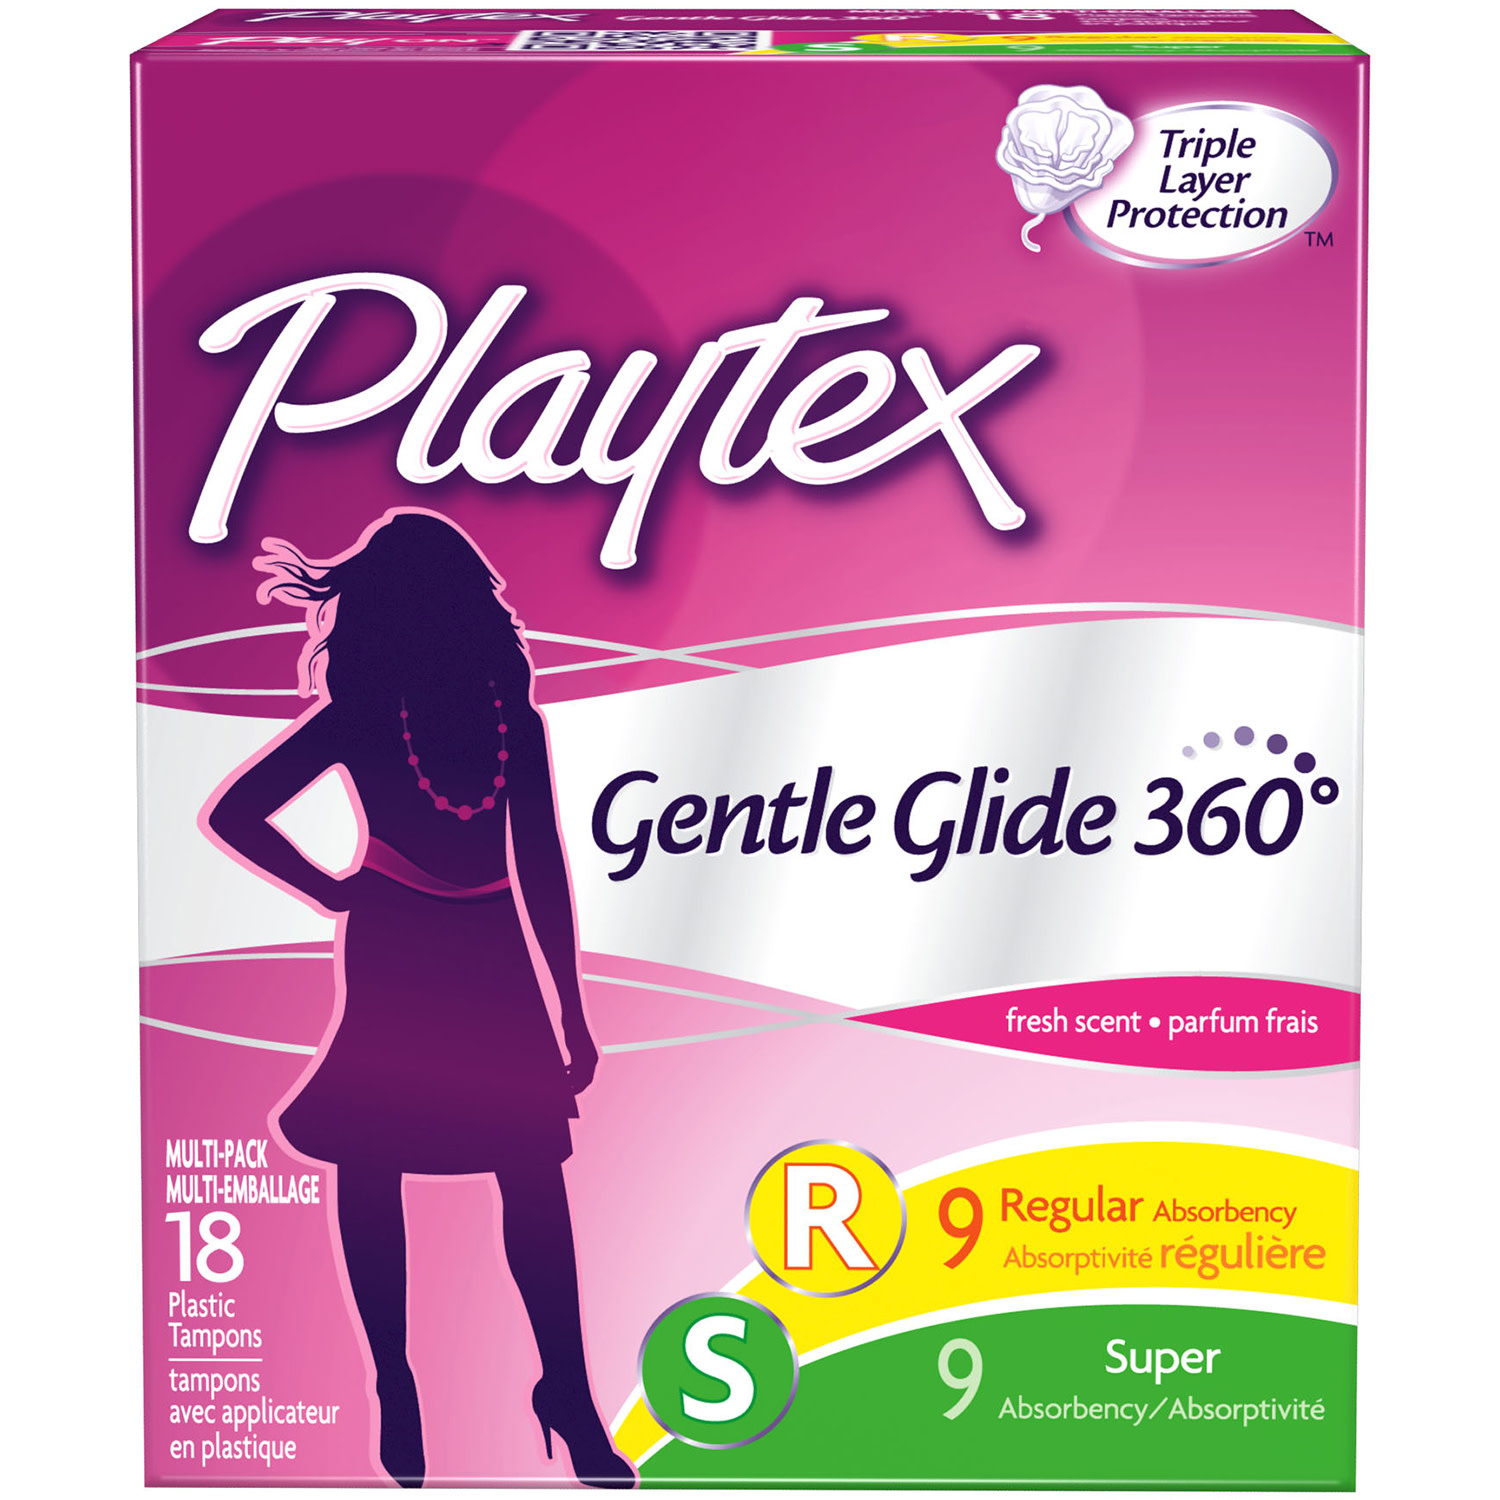 Playtex Gentle Glide Tampons Scented Multi-Pack 9 Regular Absorbency And 9 Super Absorbency - 18 Count